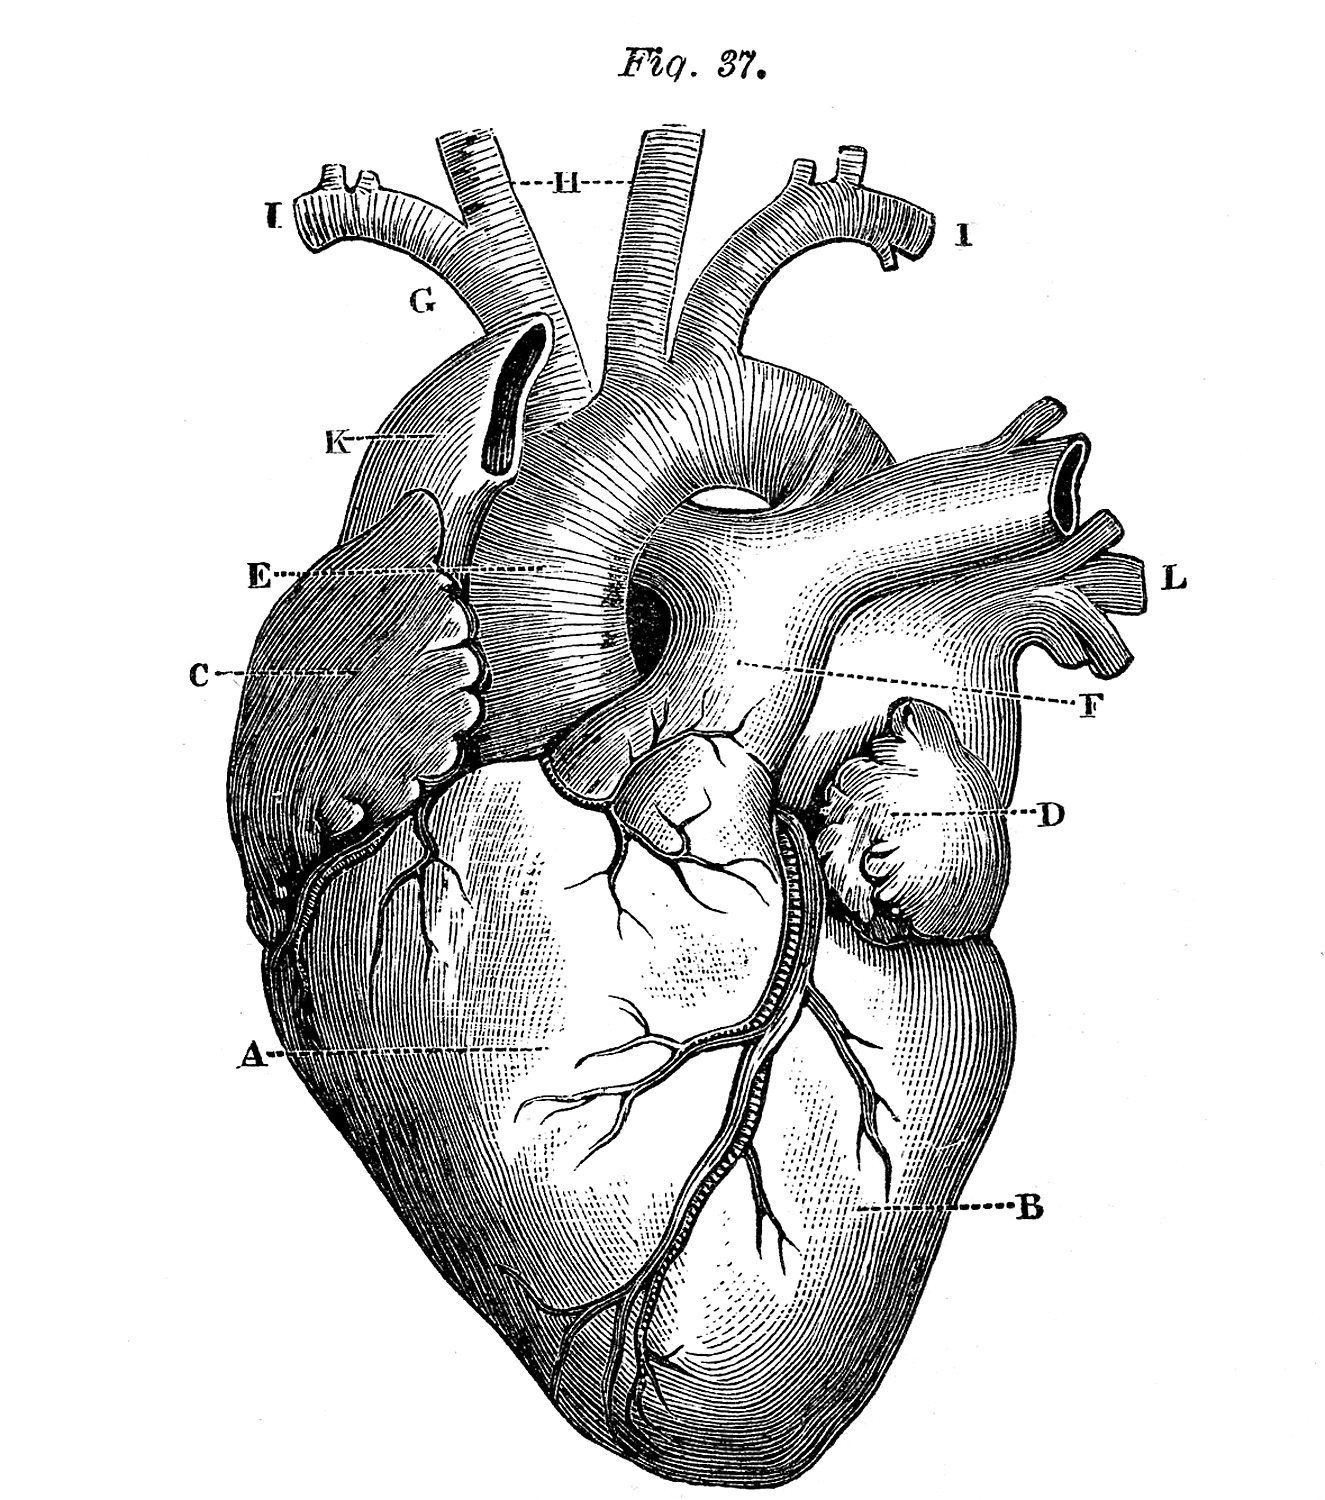 A Heart Vintage Drawing Of A Book On Anatomy 1884 Of The Year